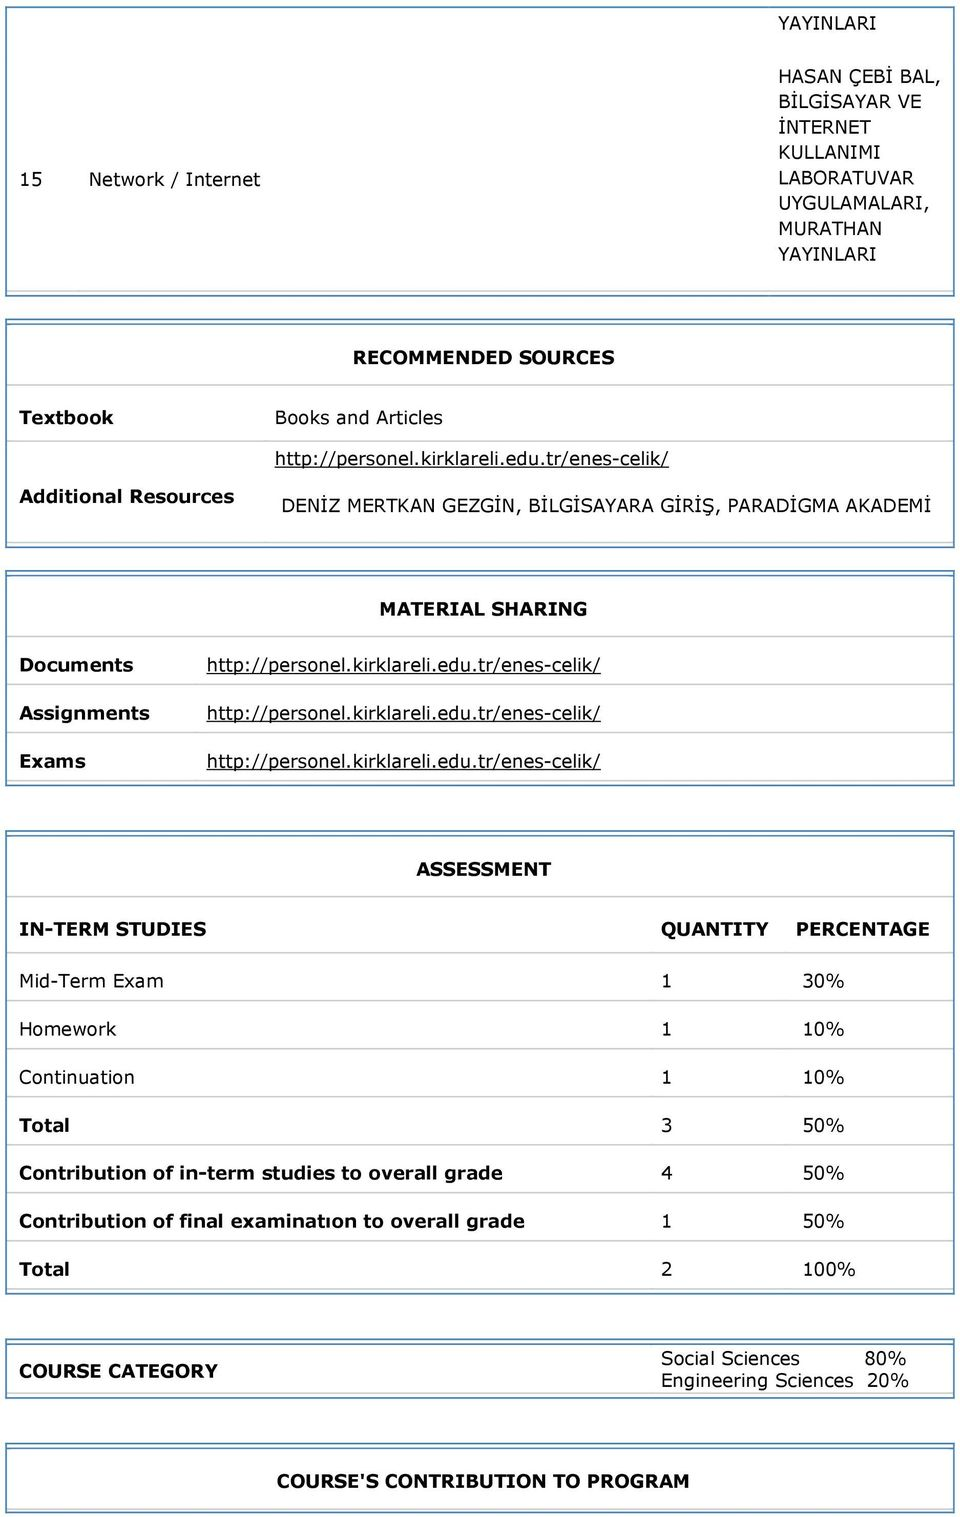 Homework 1 10% Continuation 1 10% Total 3 50% Contribution of in-term studies to overall grade 4 50% Contribution of final